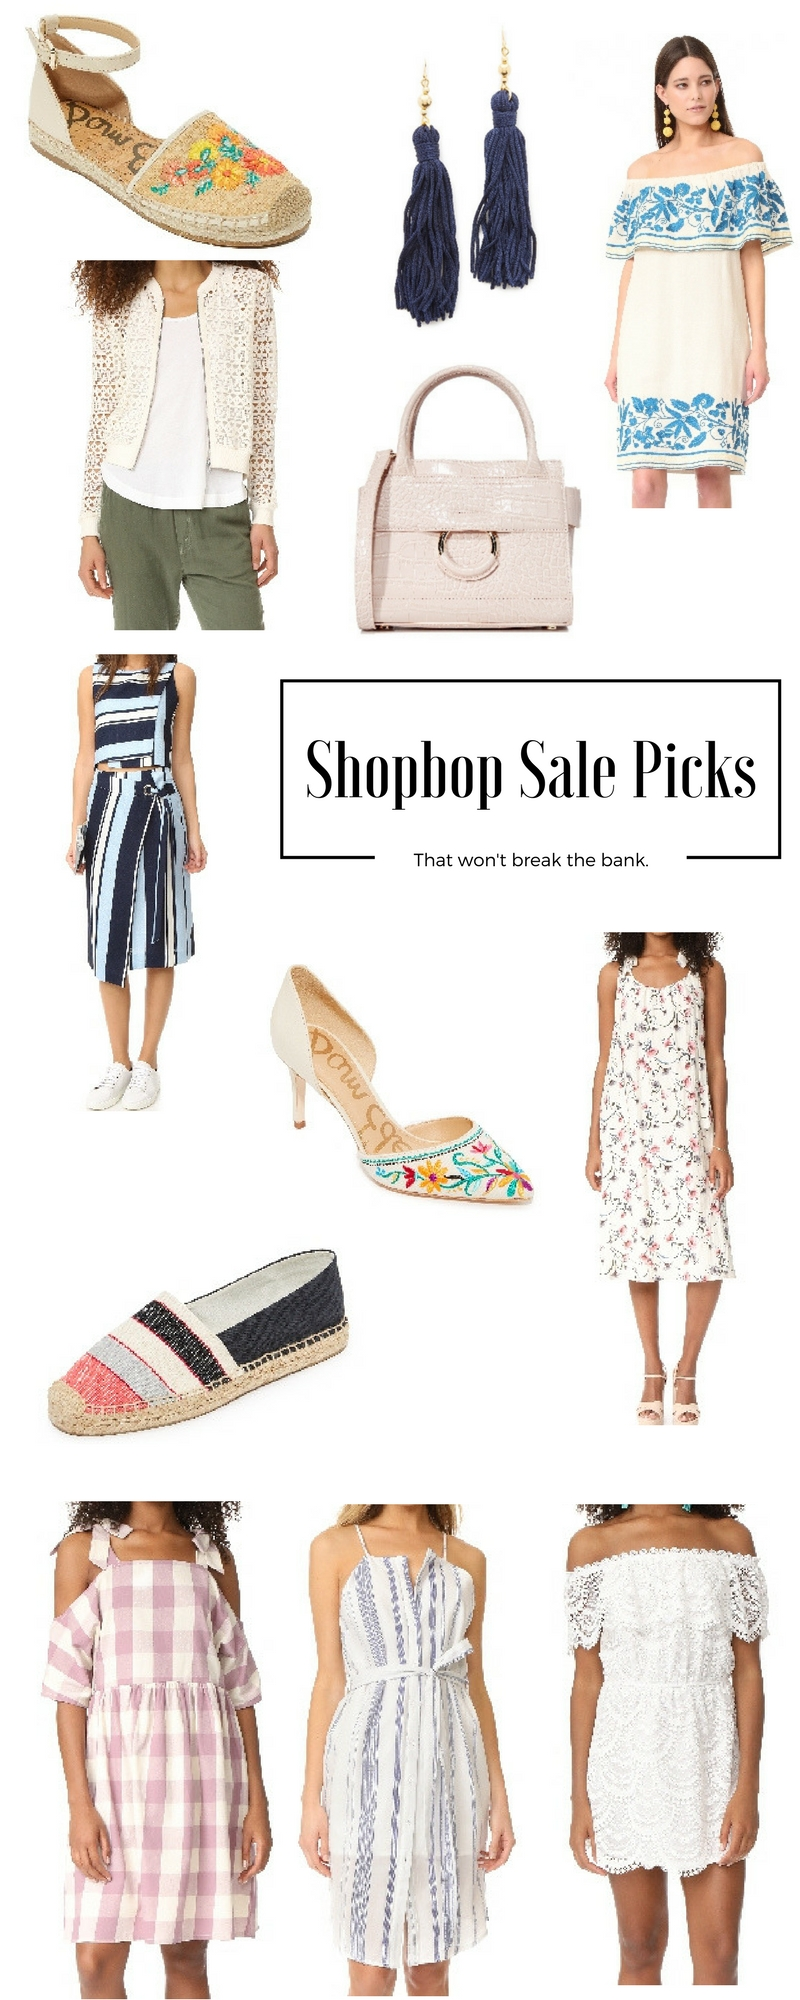 Shopbop Sale – Fashionable finds for less